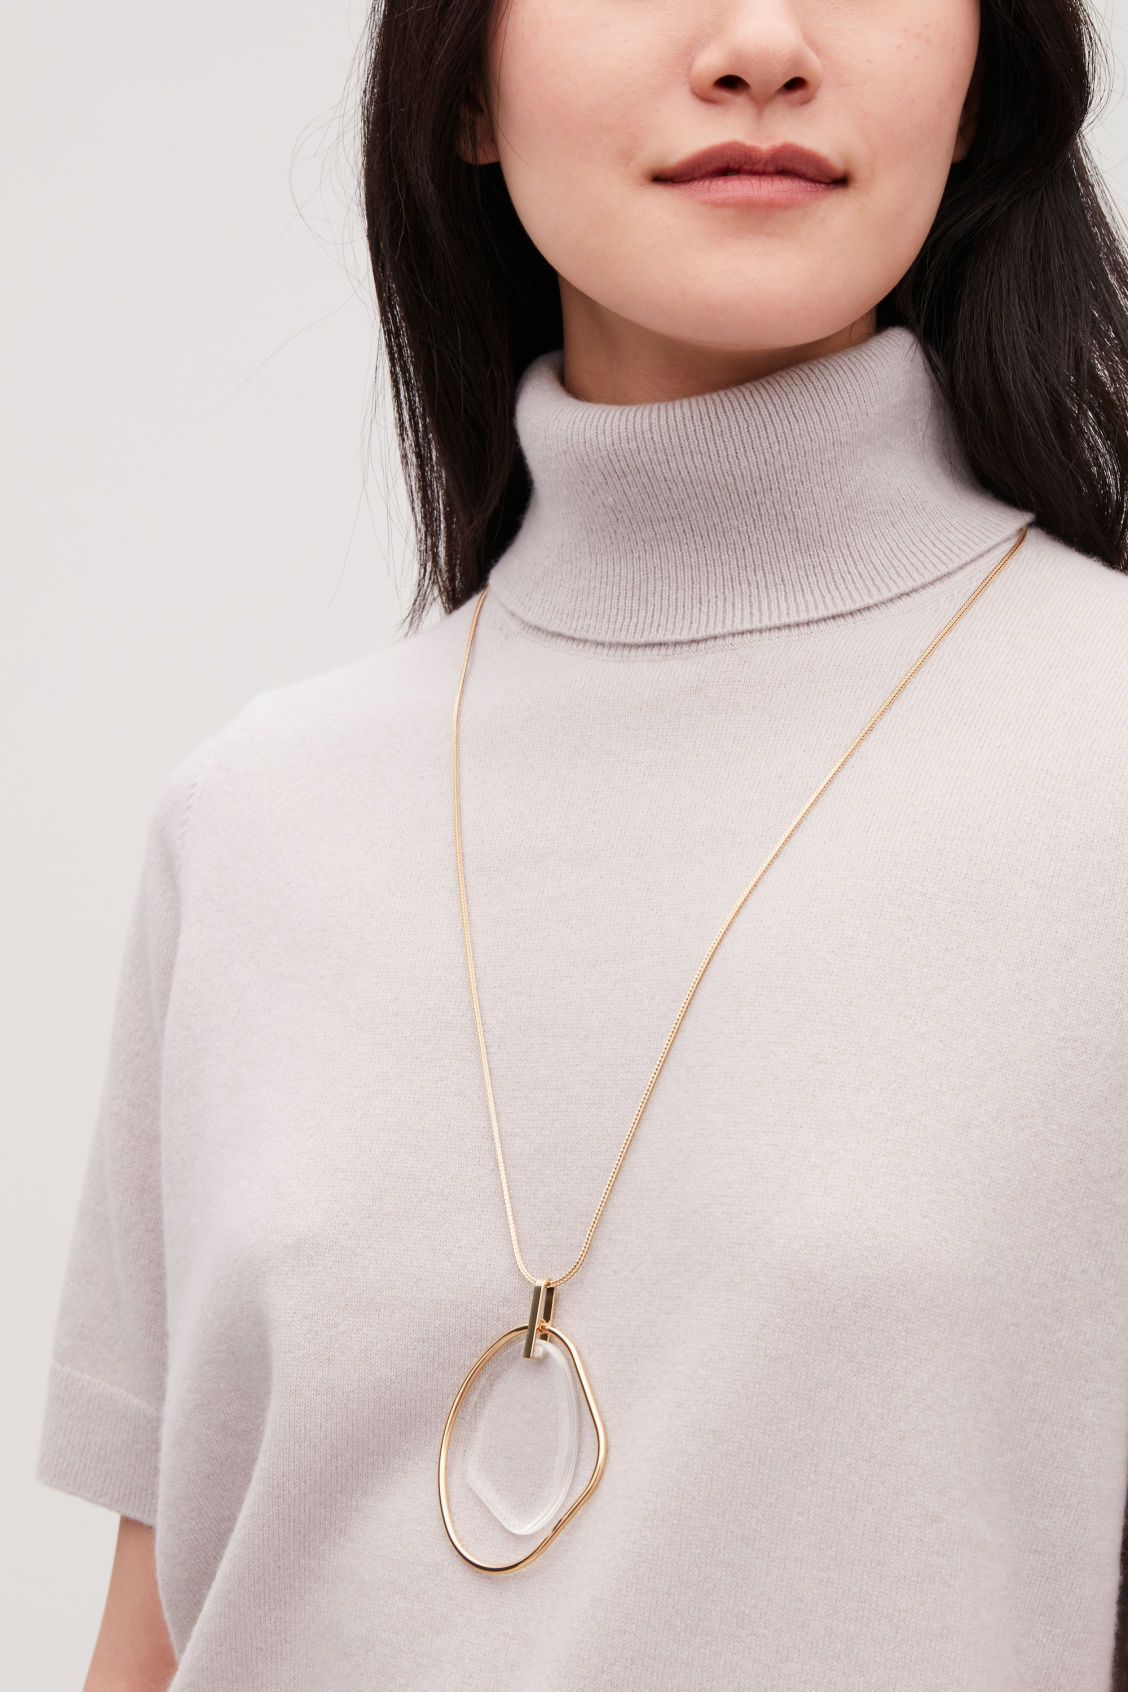 Detailed image of Cos long glass pendant necklace  in gold